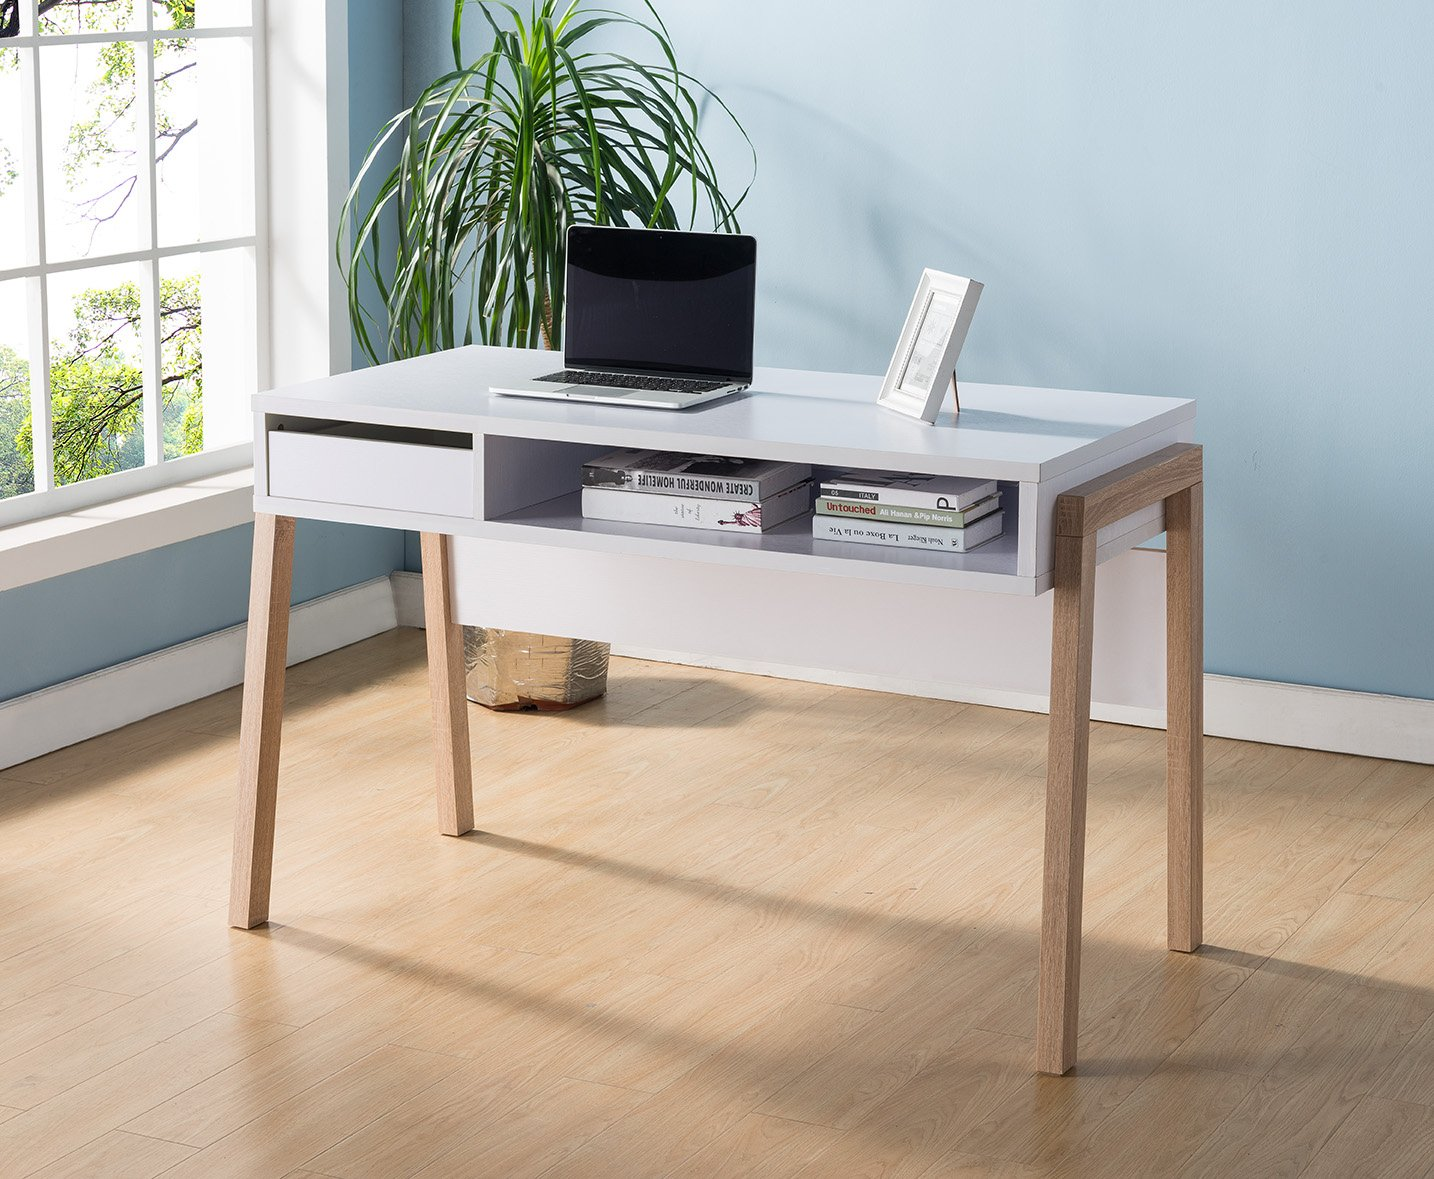 151400 Smart Home White & Weathered White Laptop Computer Writing Desk